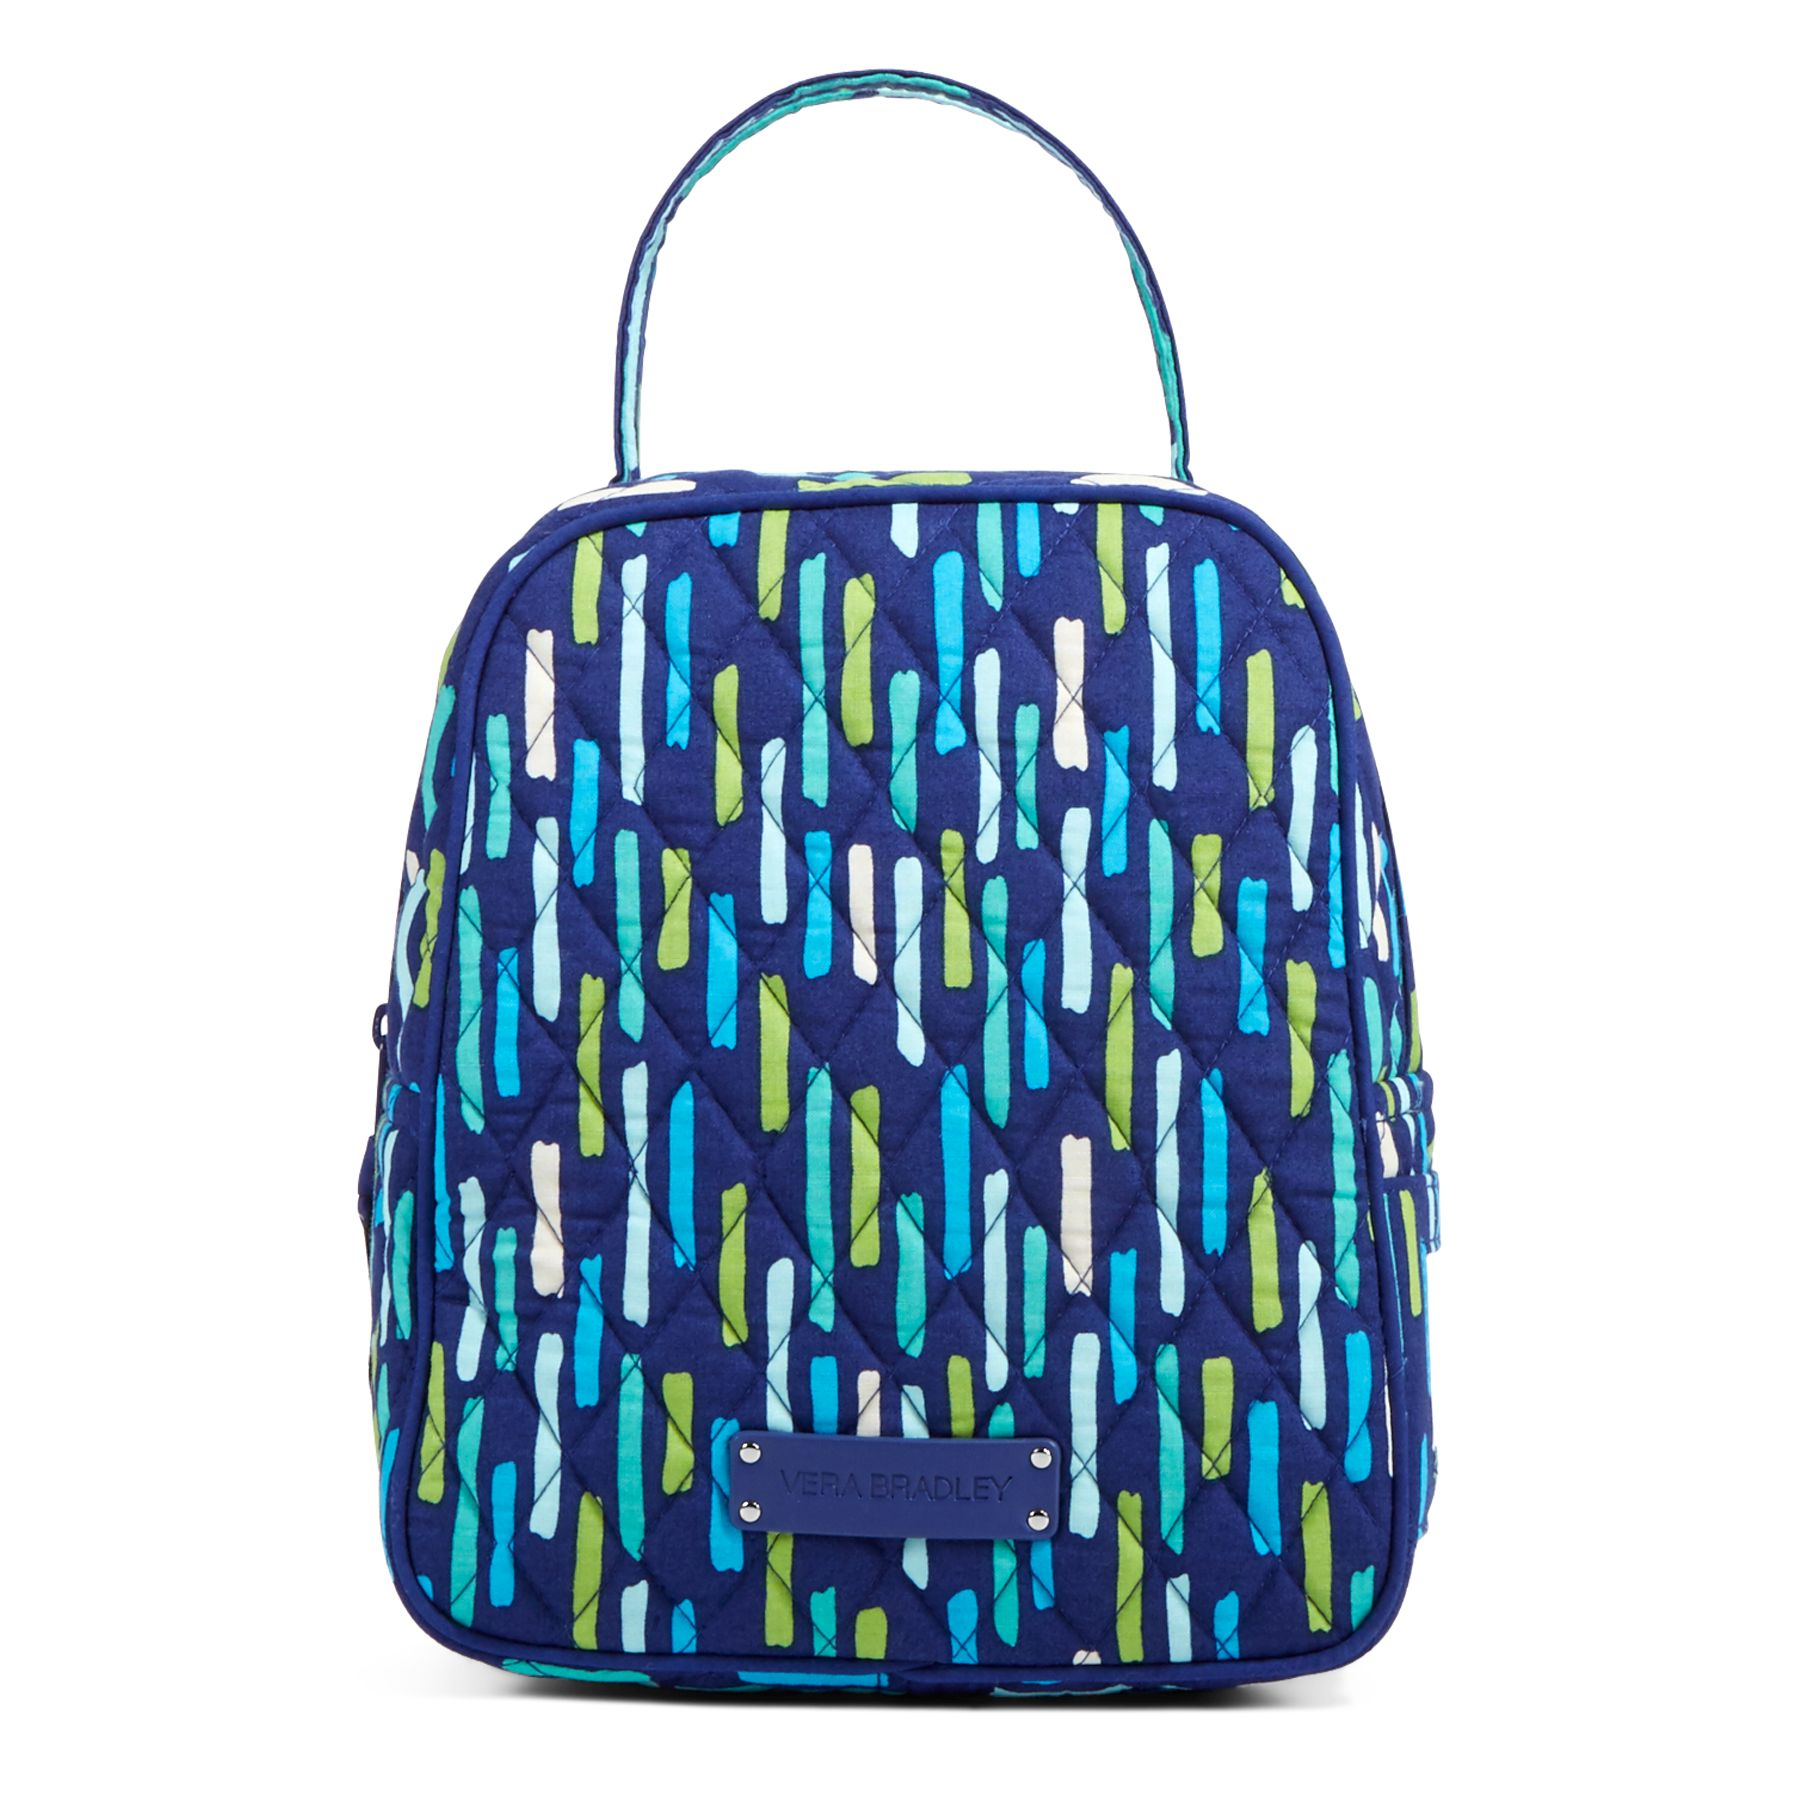 9e6d02003d ... UPC 886003311547 product image for Vera Bradley Lunch Bunch Bag in  Katalina Showers